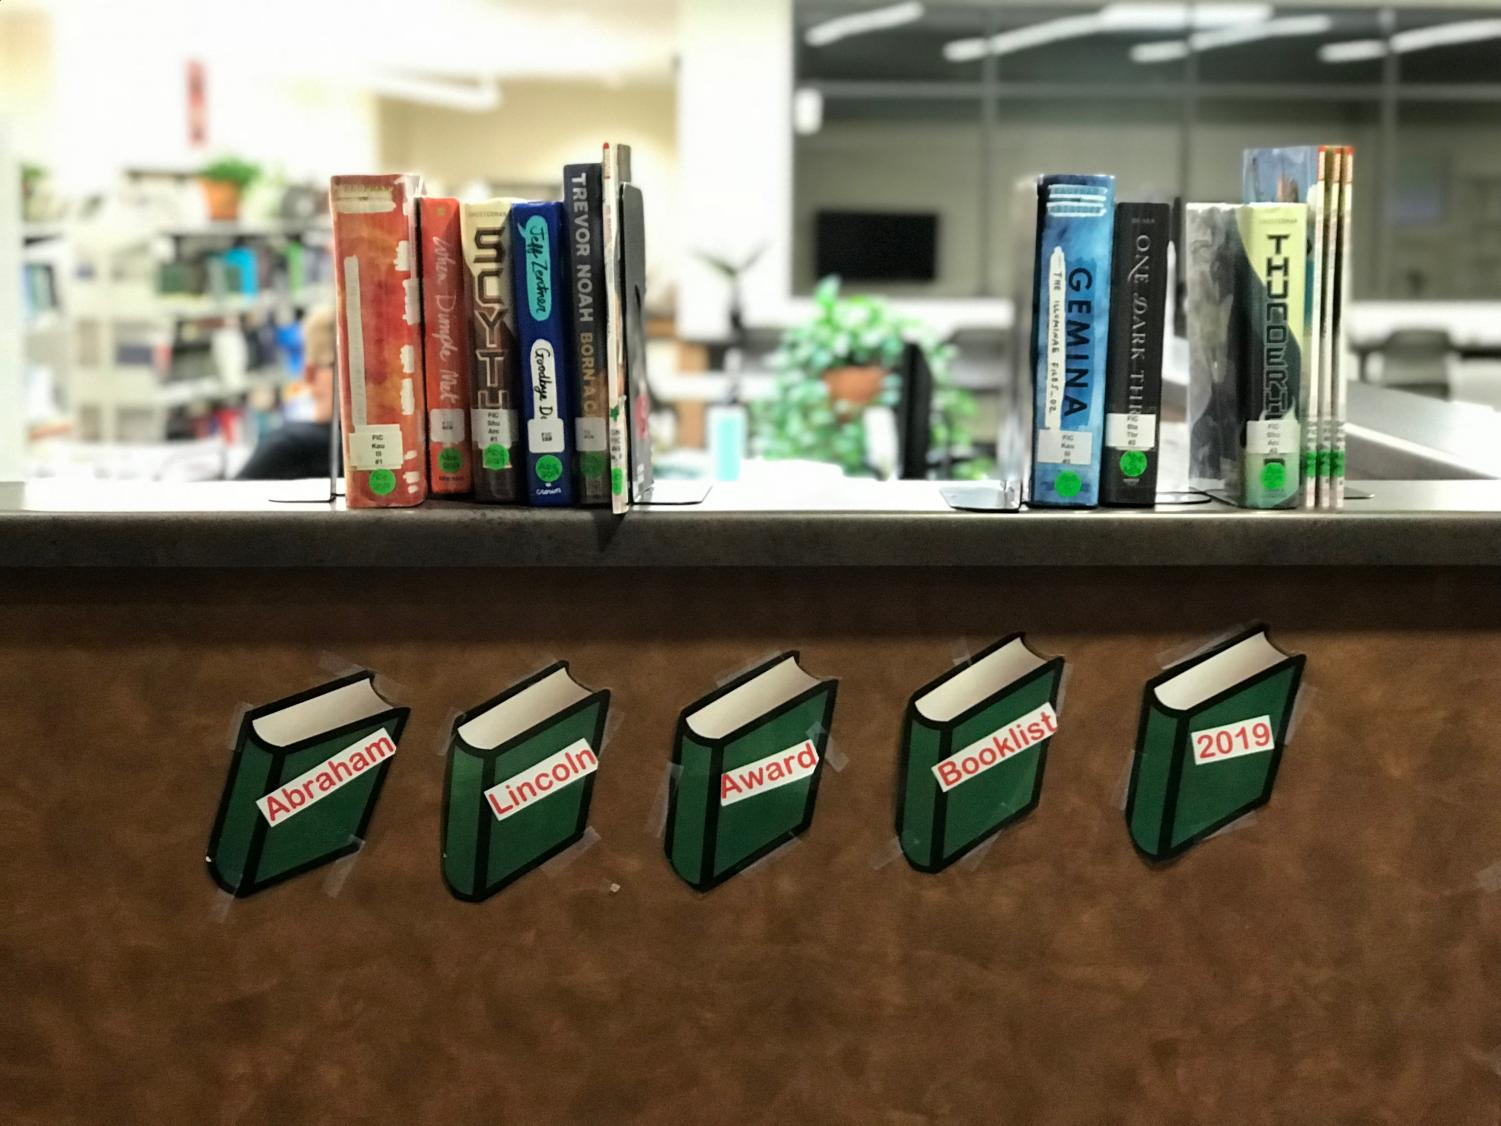 Abraham Lincoln books are available any time in the library.